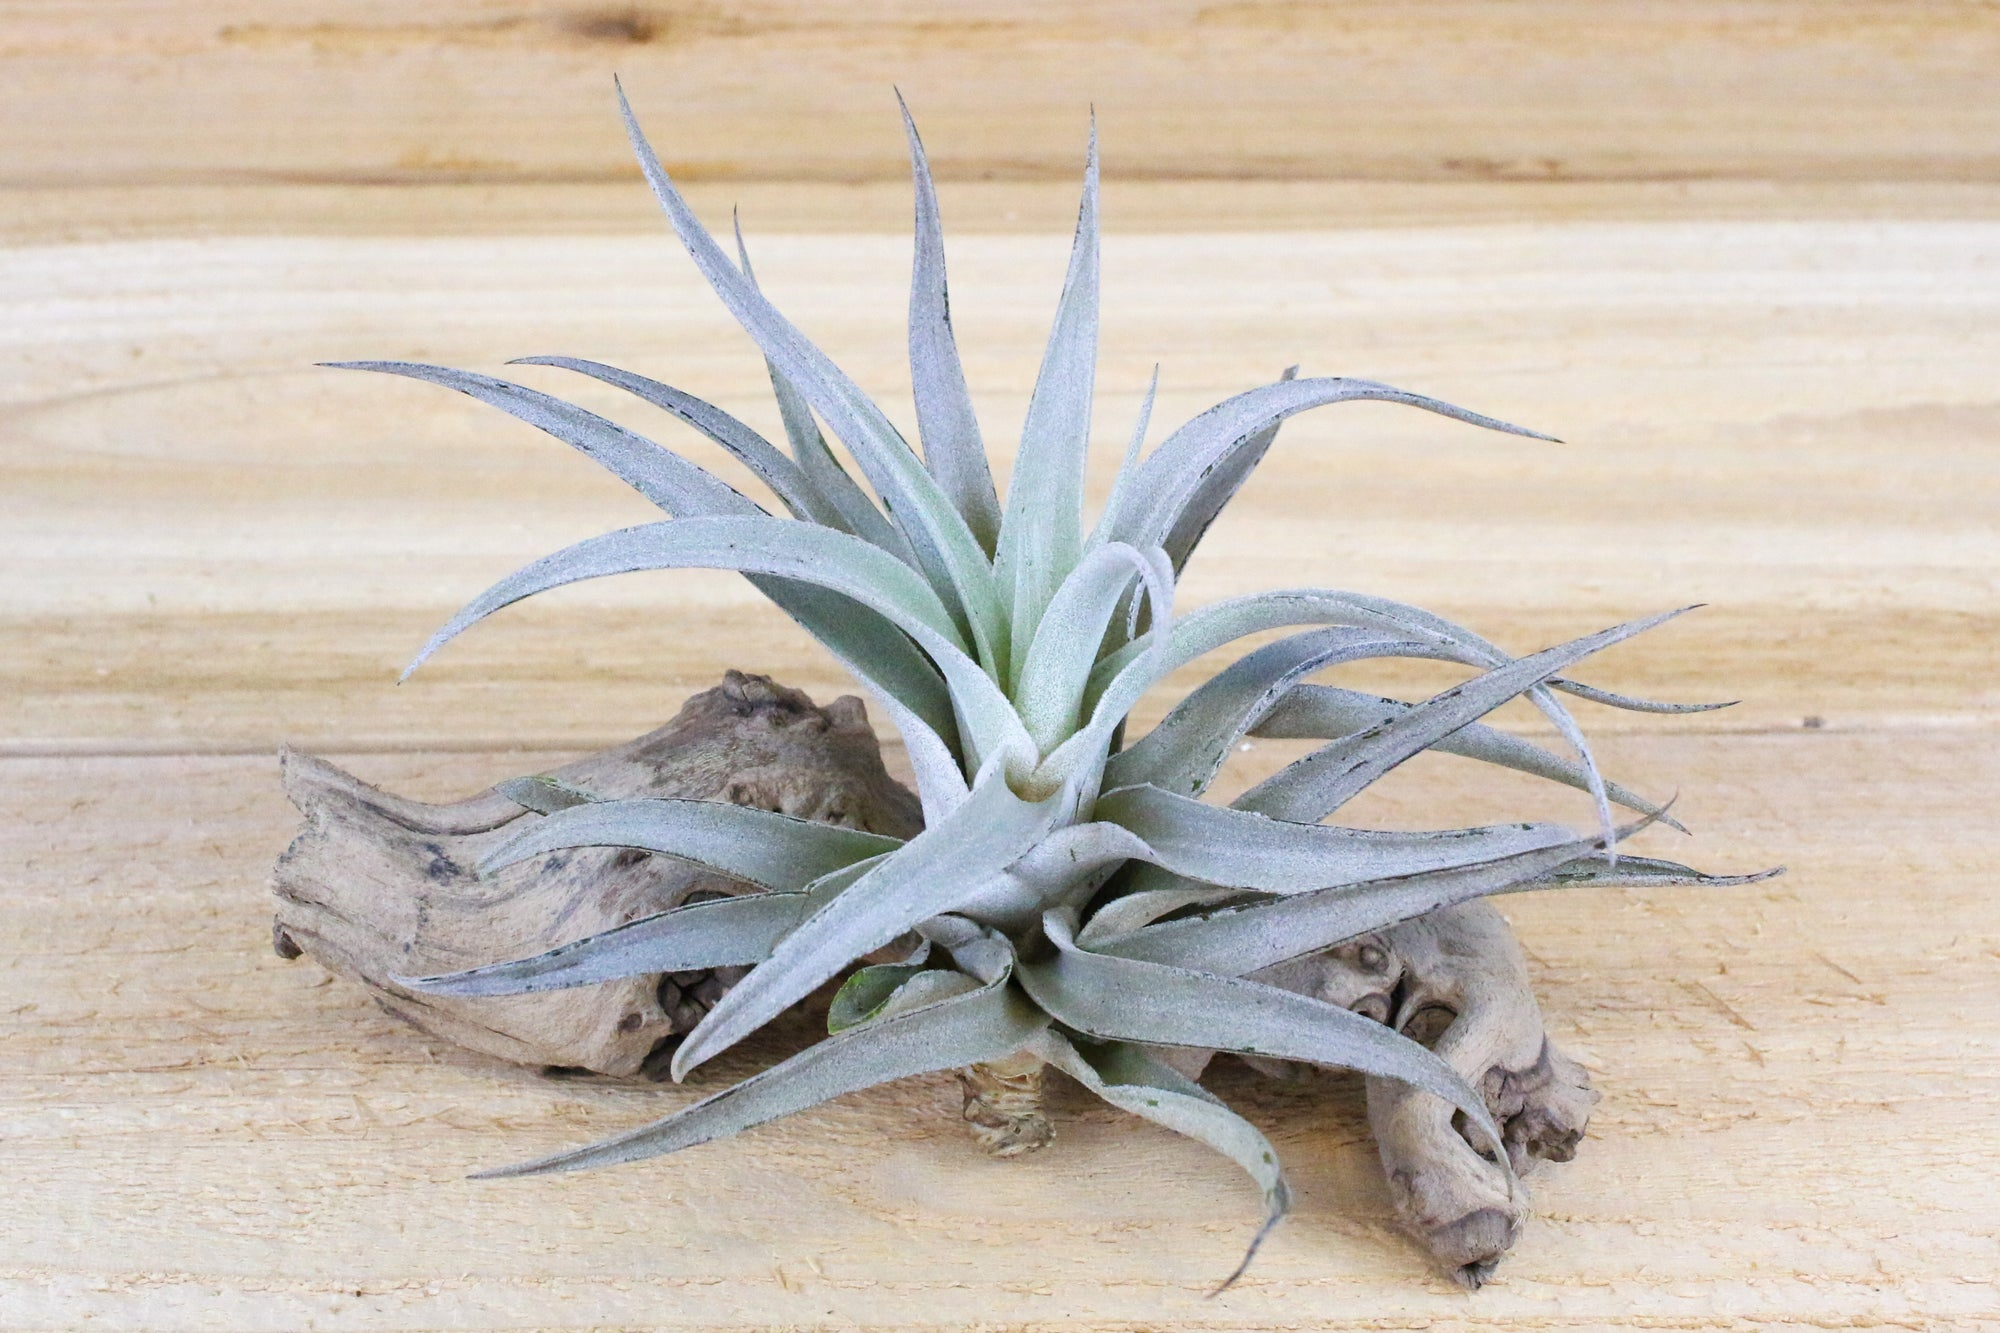 Wholesale: Large Tillandsia Harrisii 'Himnorum' Air Plants / 5-7 Inches Tall [Min Order 12] from AirPlantShop.com